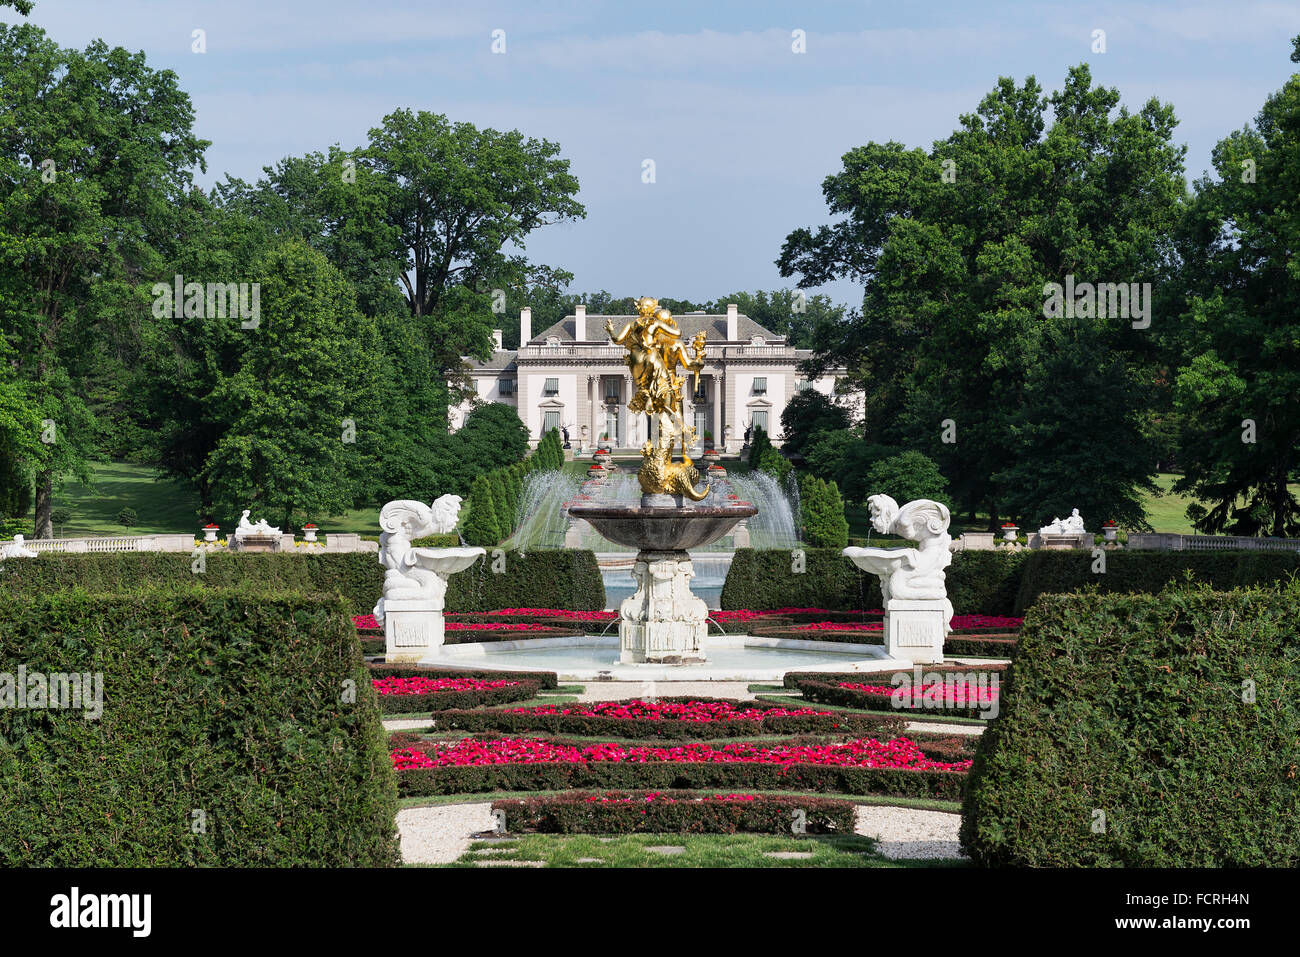 Achievement statue, Nemours Mansion and Gardens, Wilmington, Delaware, USA - Stock Image